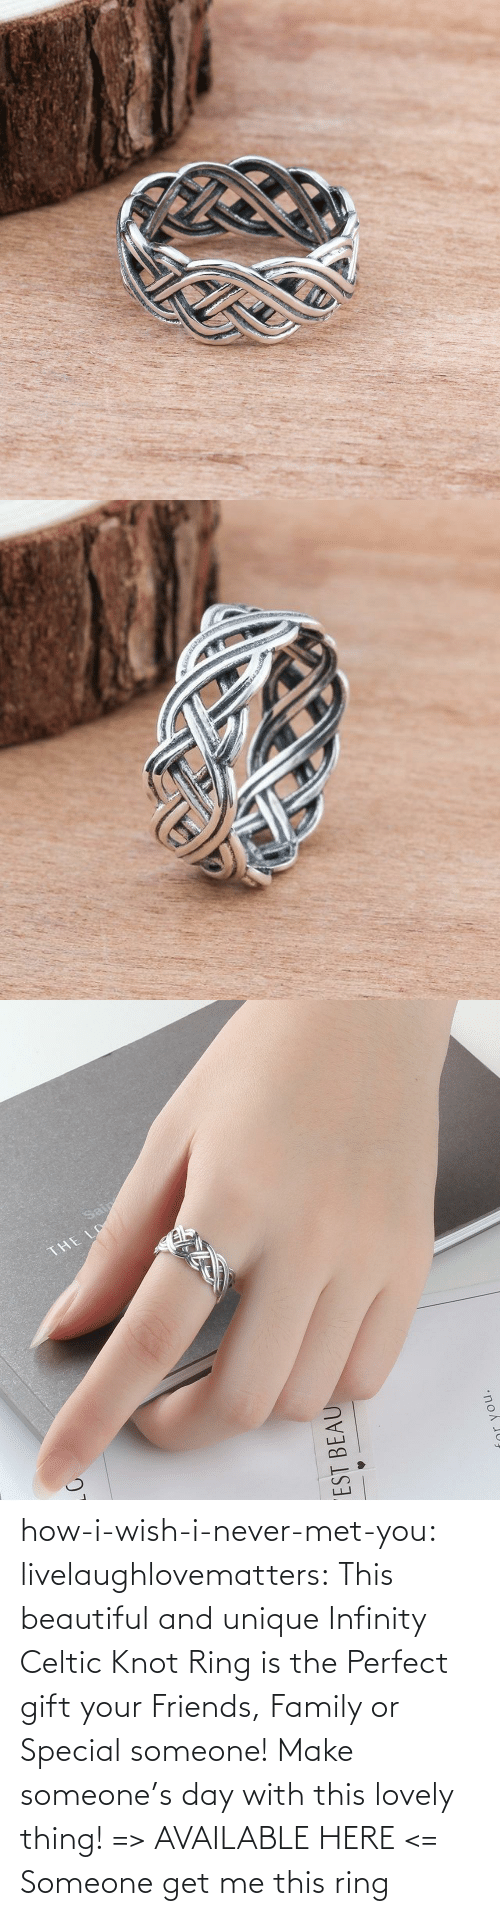 Met: how-i-wish-i-never-met-you: livelaughlovematters:  This beautiful and unique Infinity Celtic Knot Ring is the Perfect gift your Friends, Family or Special someone! Make someone's day with this lovely thing! => AVAILABLE HERE <=    Someone get me this ring